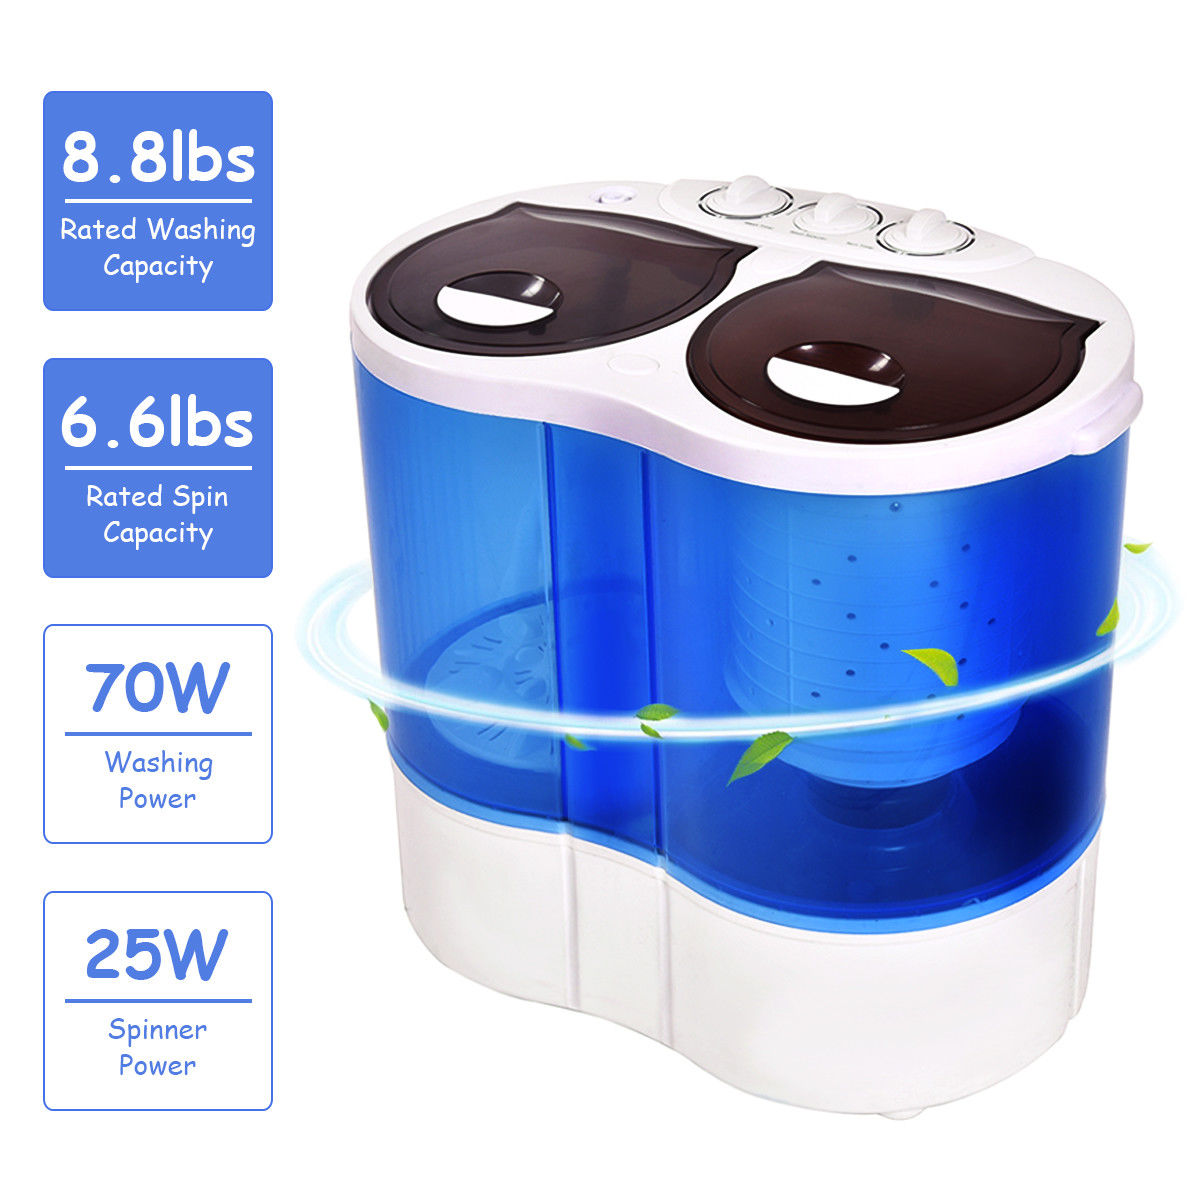 Charmant Costway Portable Mini Washing Machine Compact Twin Tub 15.4lbs Washer Spin  Spinner